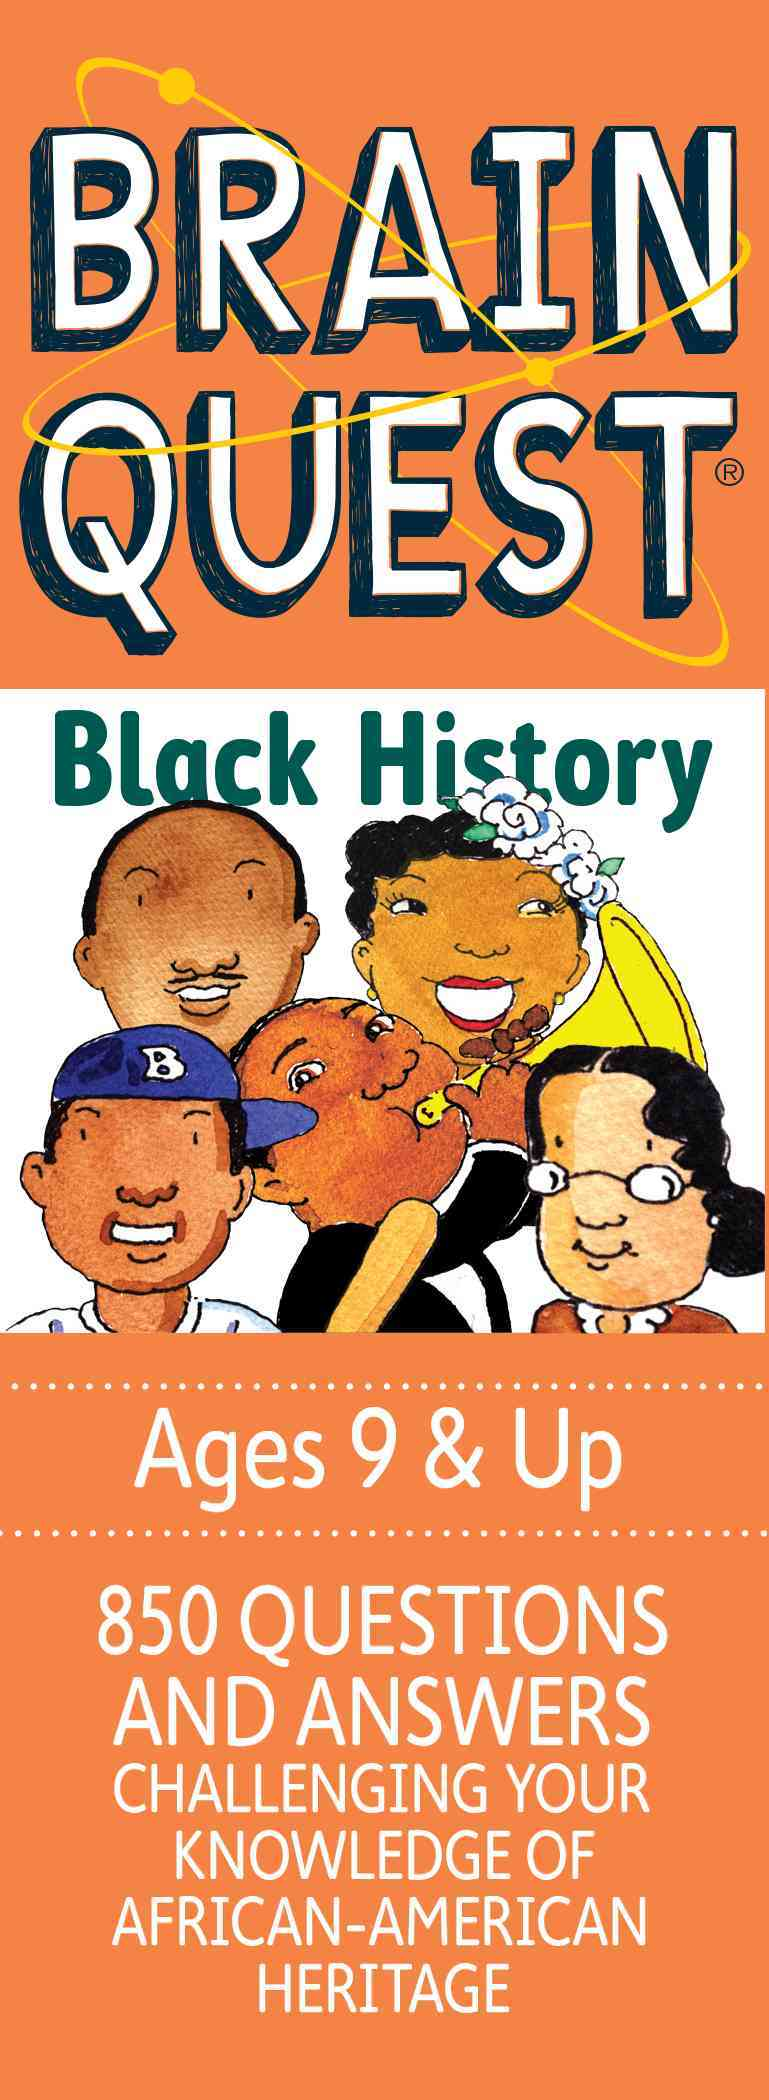 Brain Quest Black History: 850 Questions, 850 Answers Challenging Your Knowledge of African-American Heritage, Ages 9... (Cards)